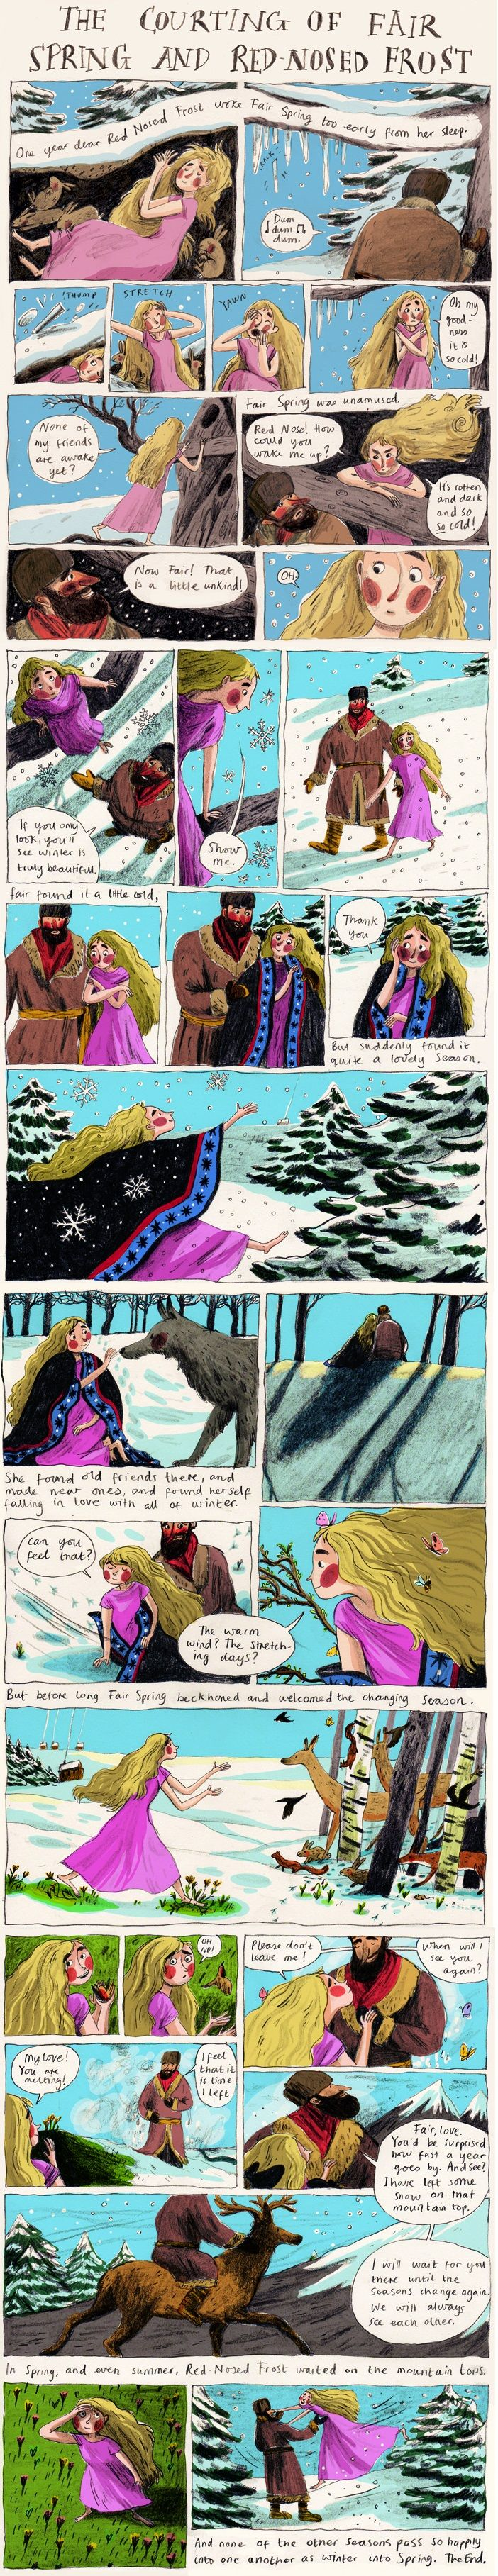 A comic inspired by the Russian folktale, The Snow Maiden by Briony May Smith